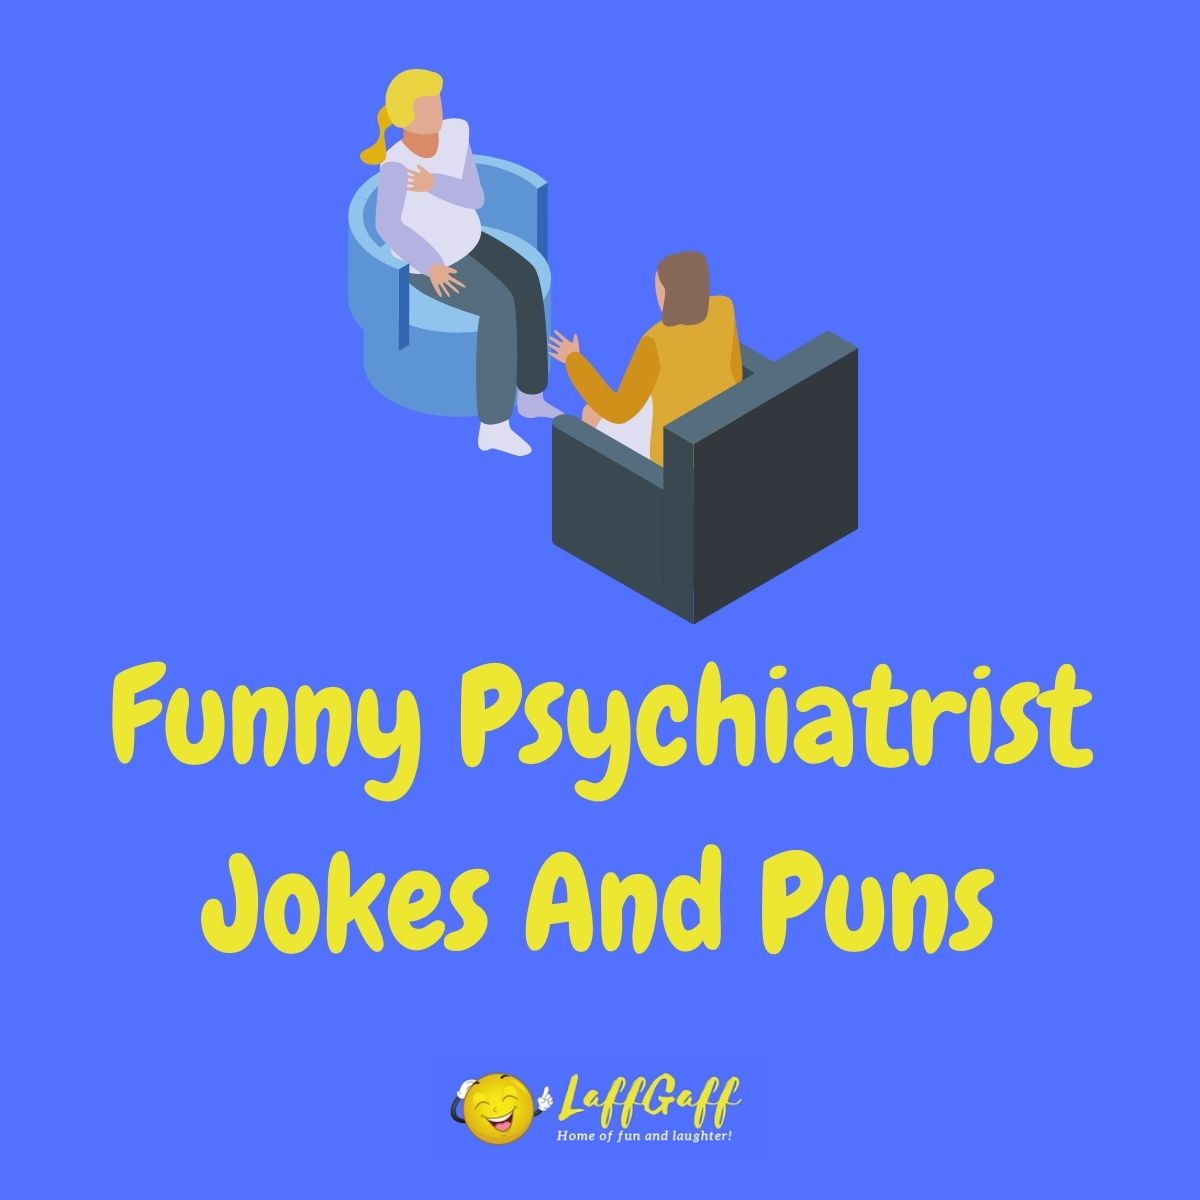 Featured image for a page of funny psychiatrist jokes and puns.